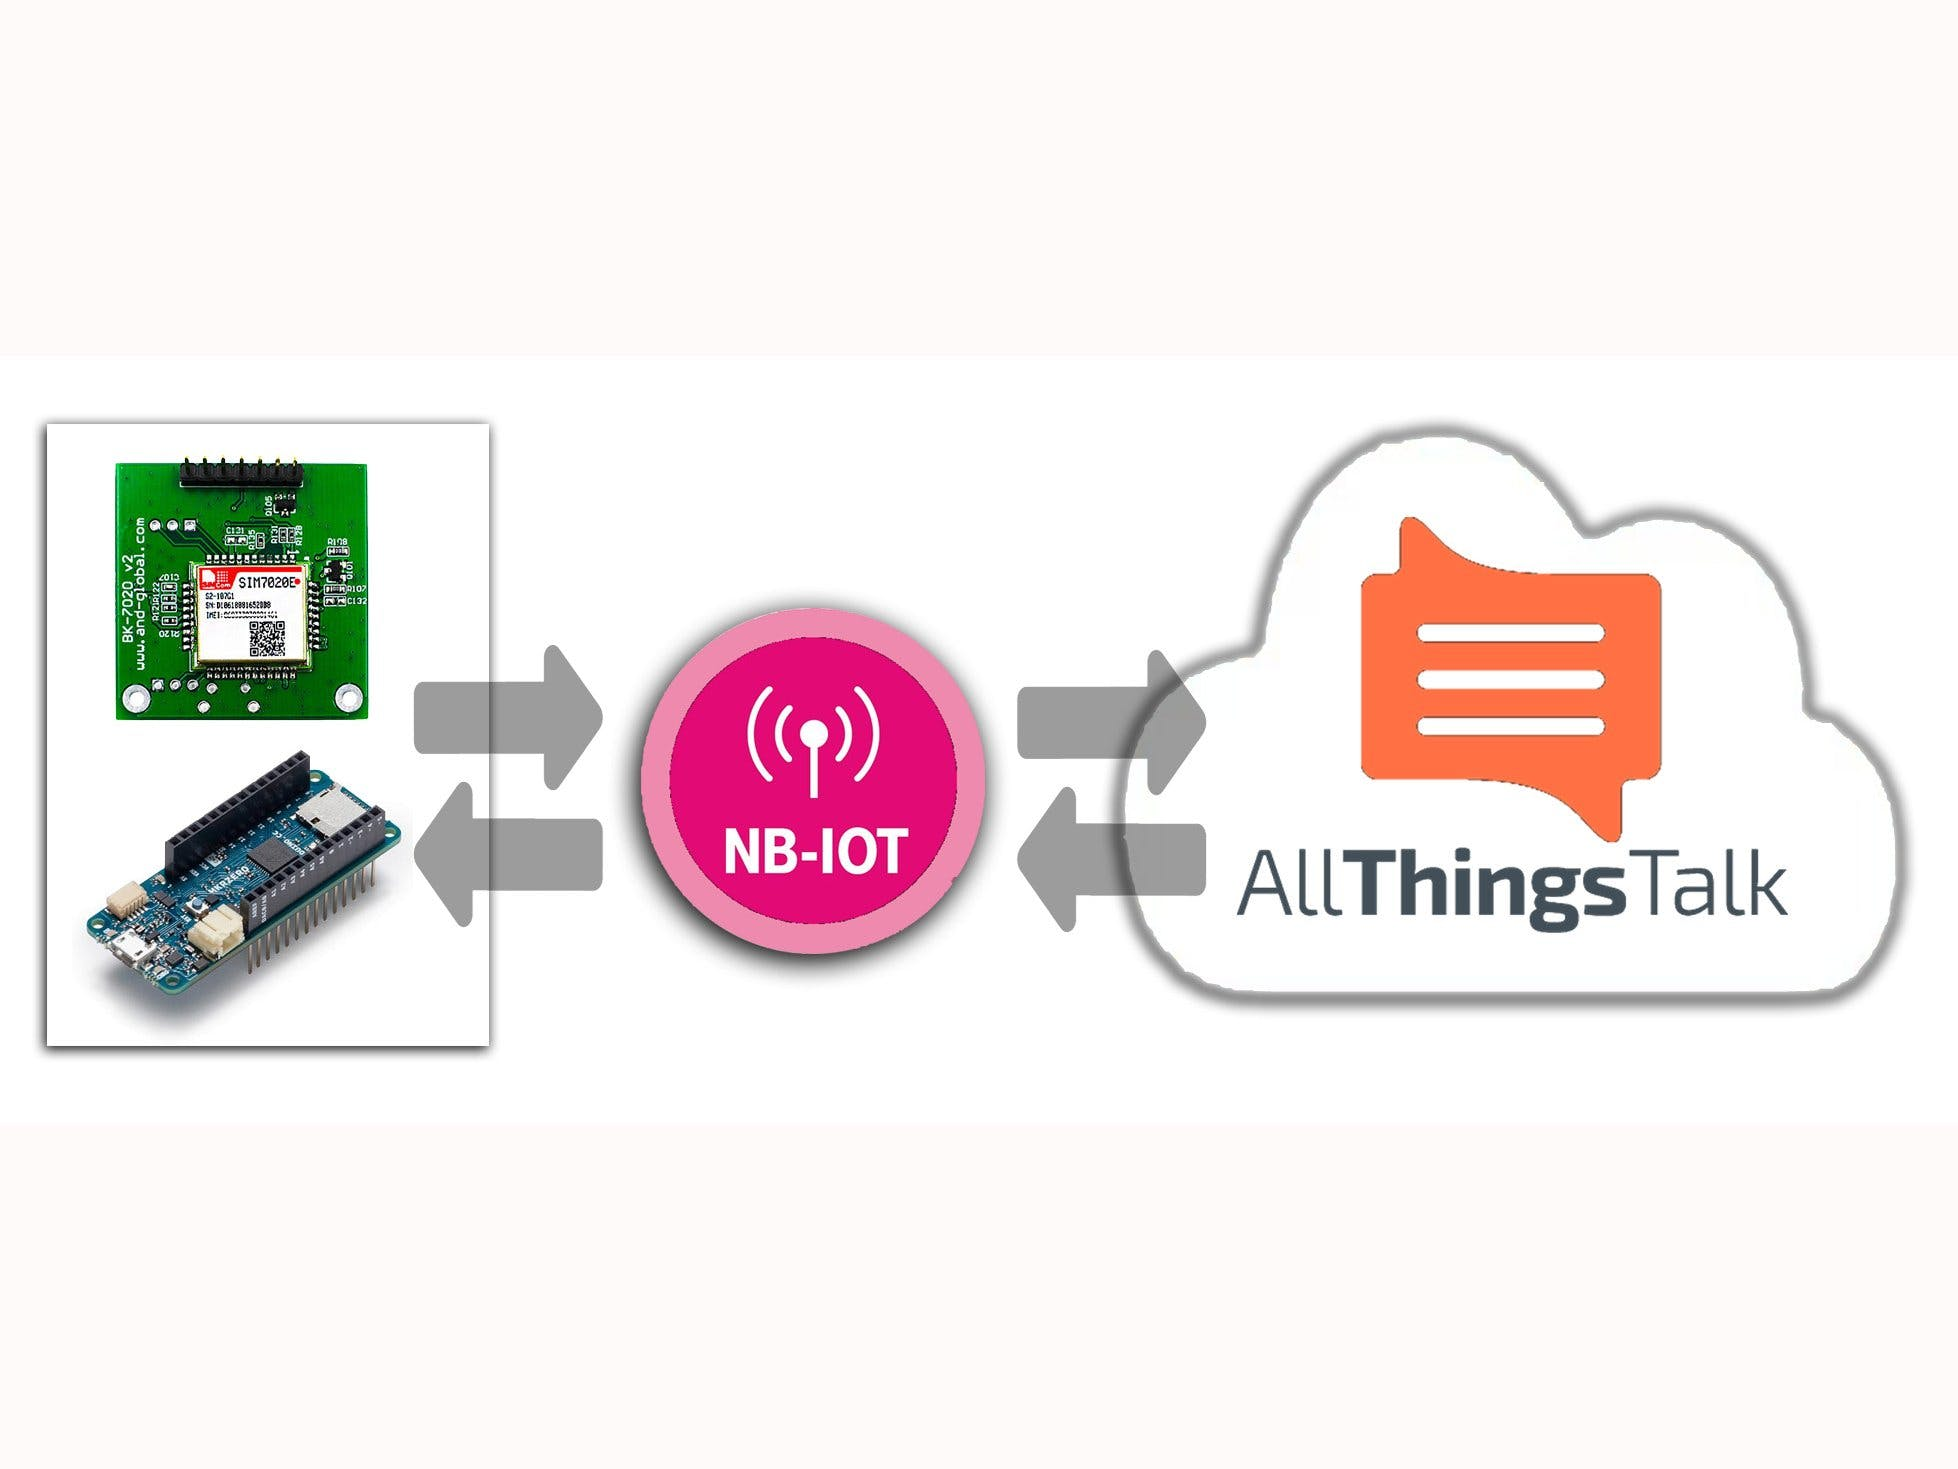 Arduino NB-IoT with SIM7020 and T-Mobile